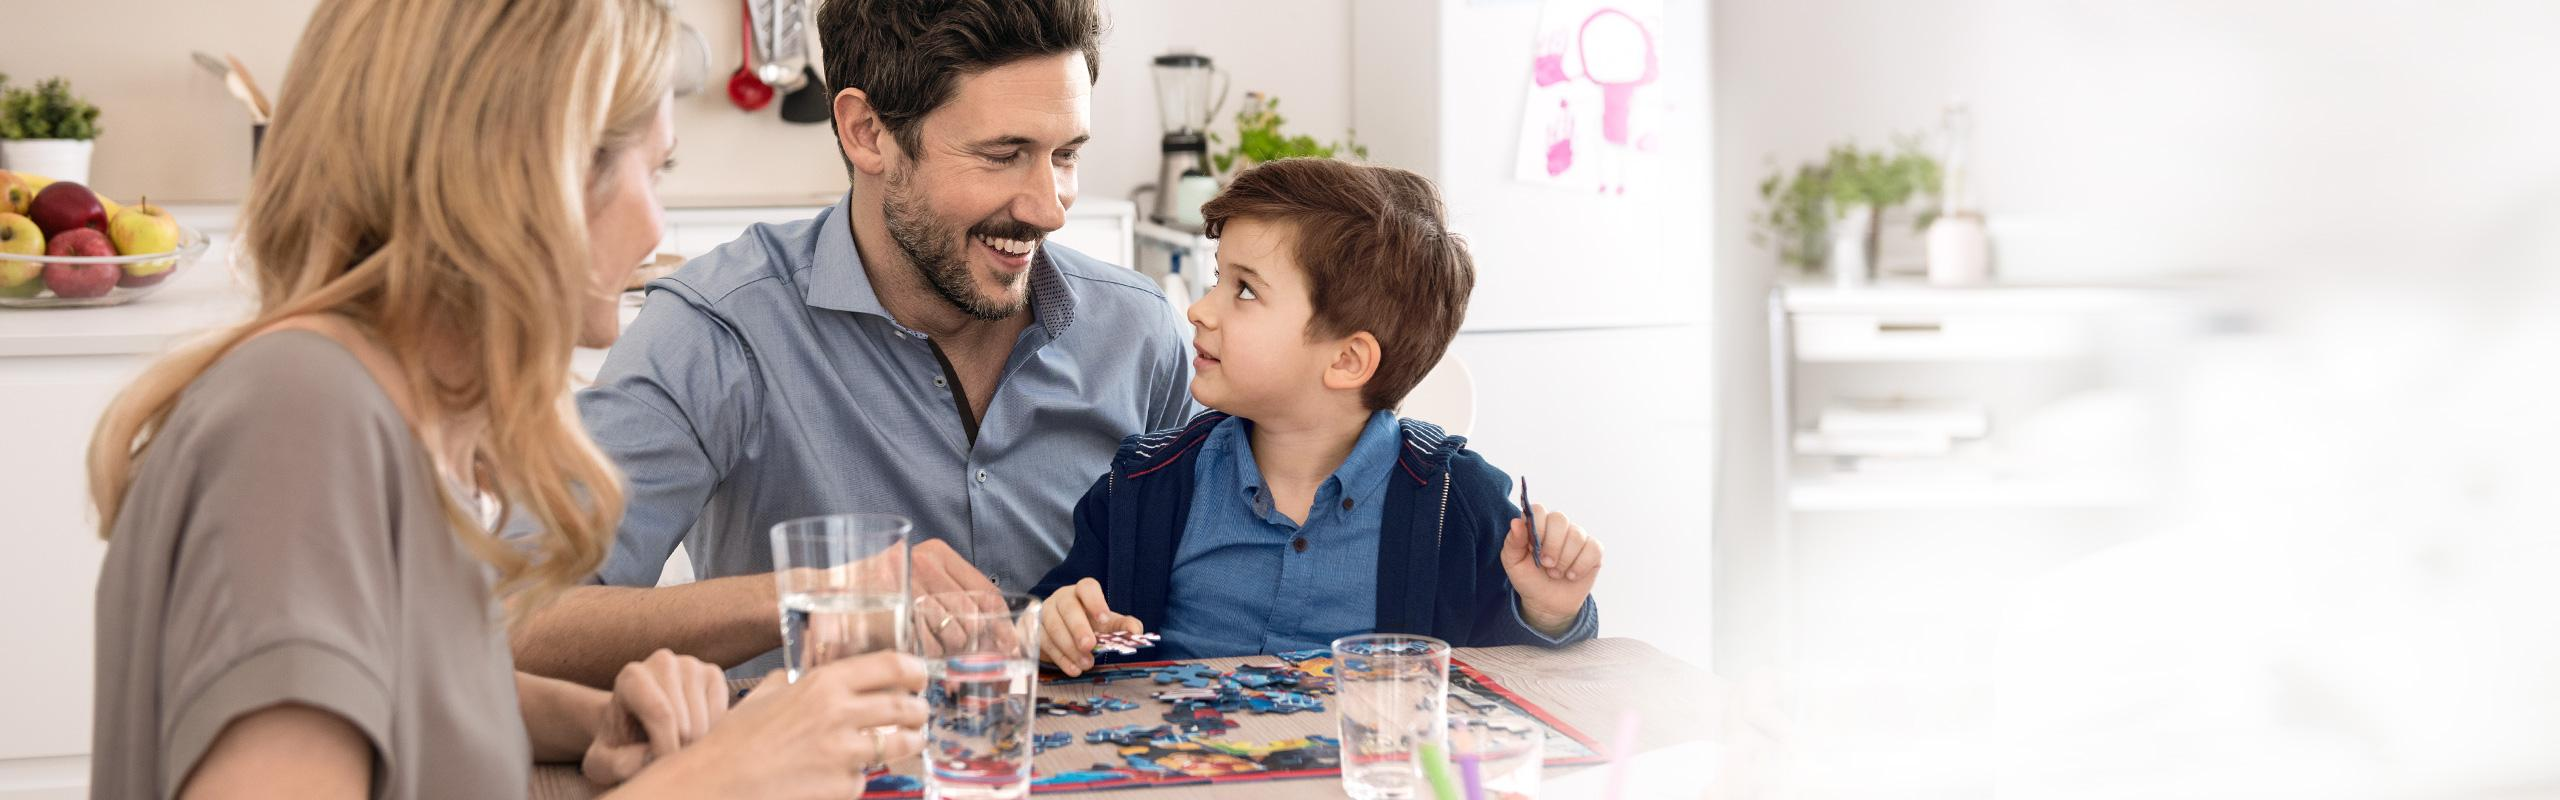 BRITA water filters and cartridges happy family